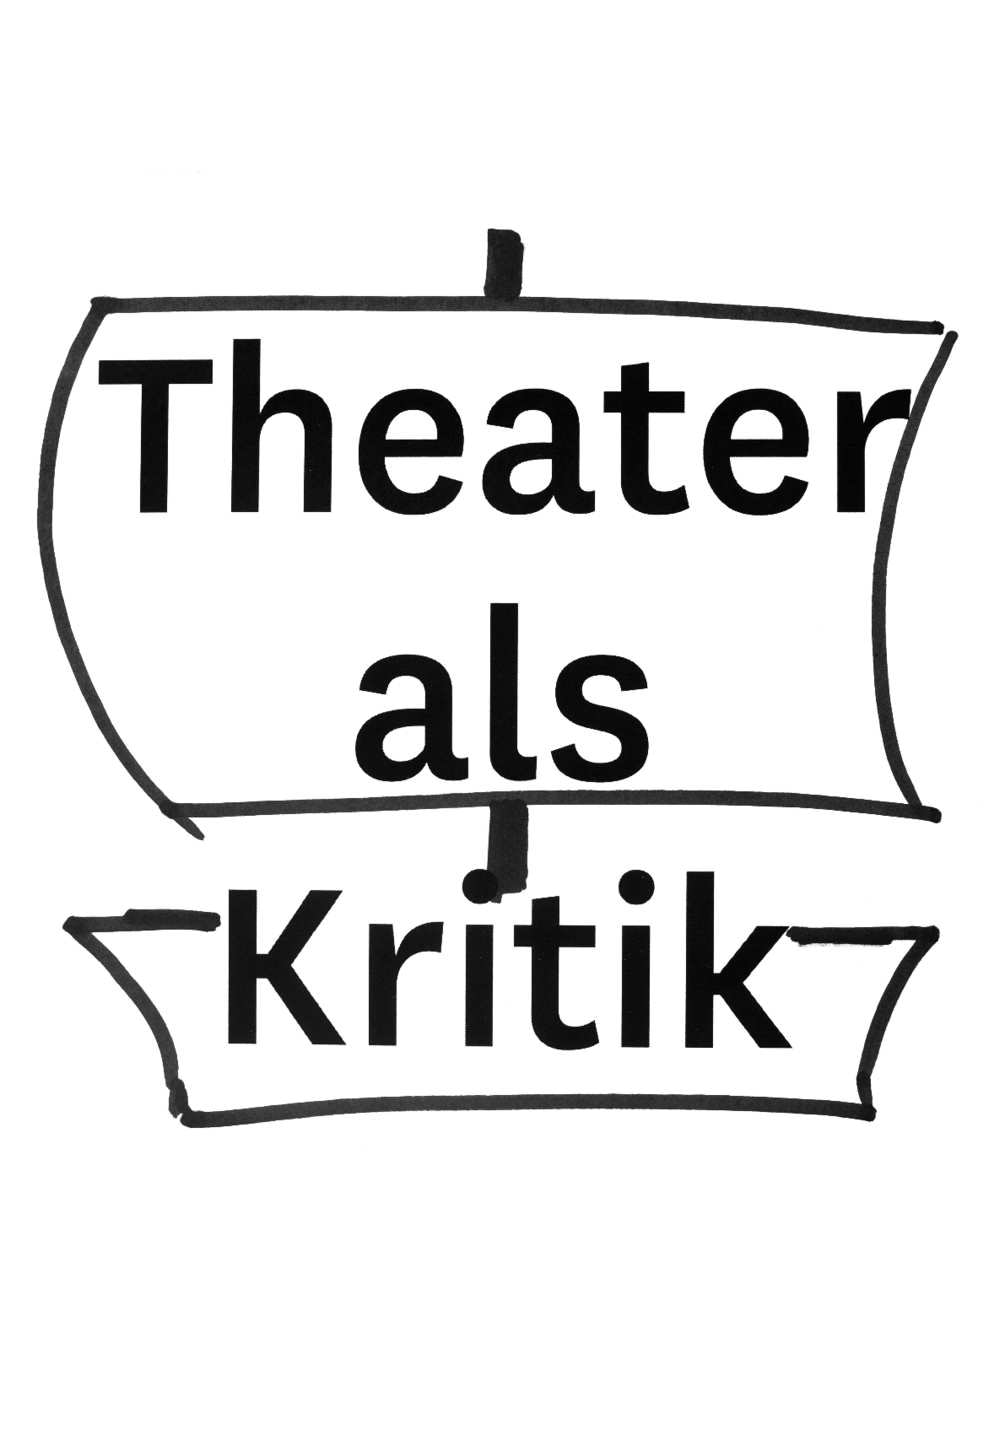 theater-as-critique-slip-26-1005x1435px